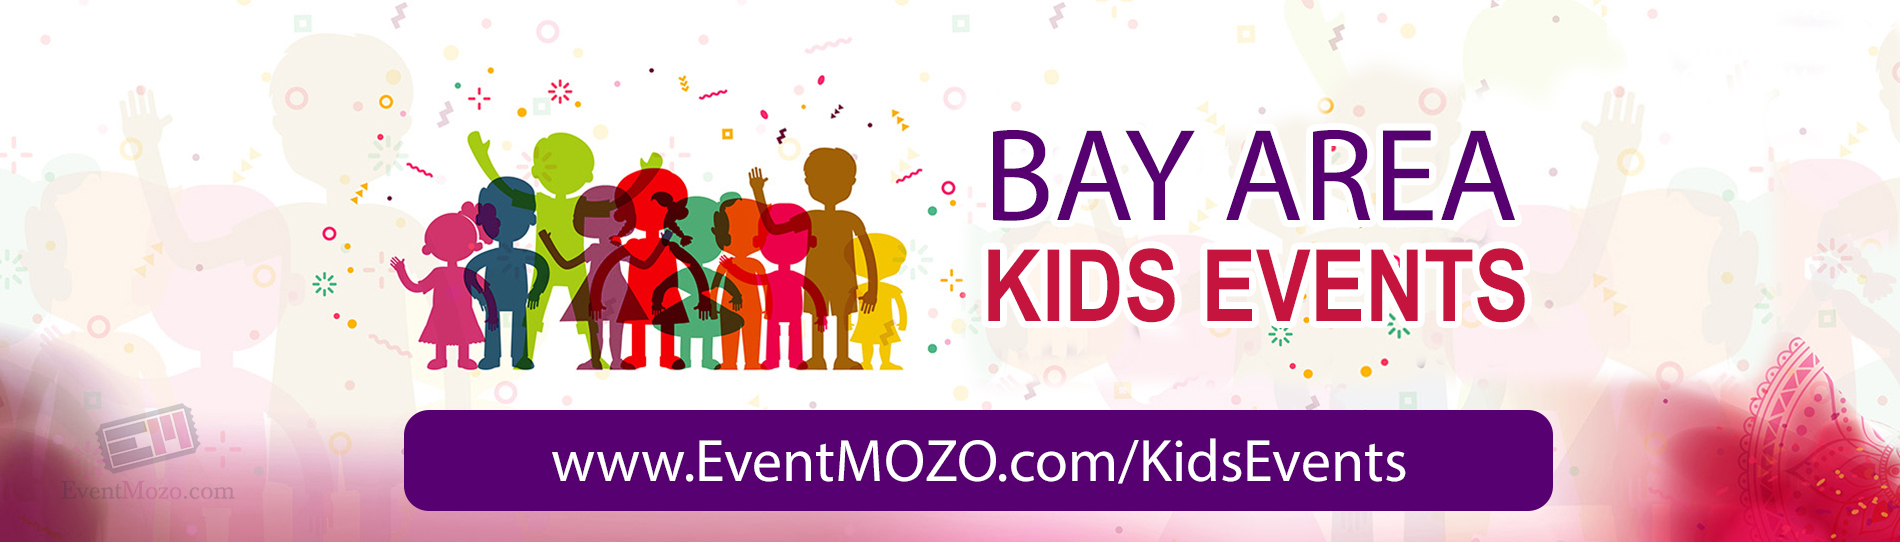 EventMozo Bay Area Kids Events